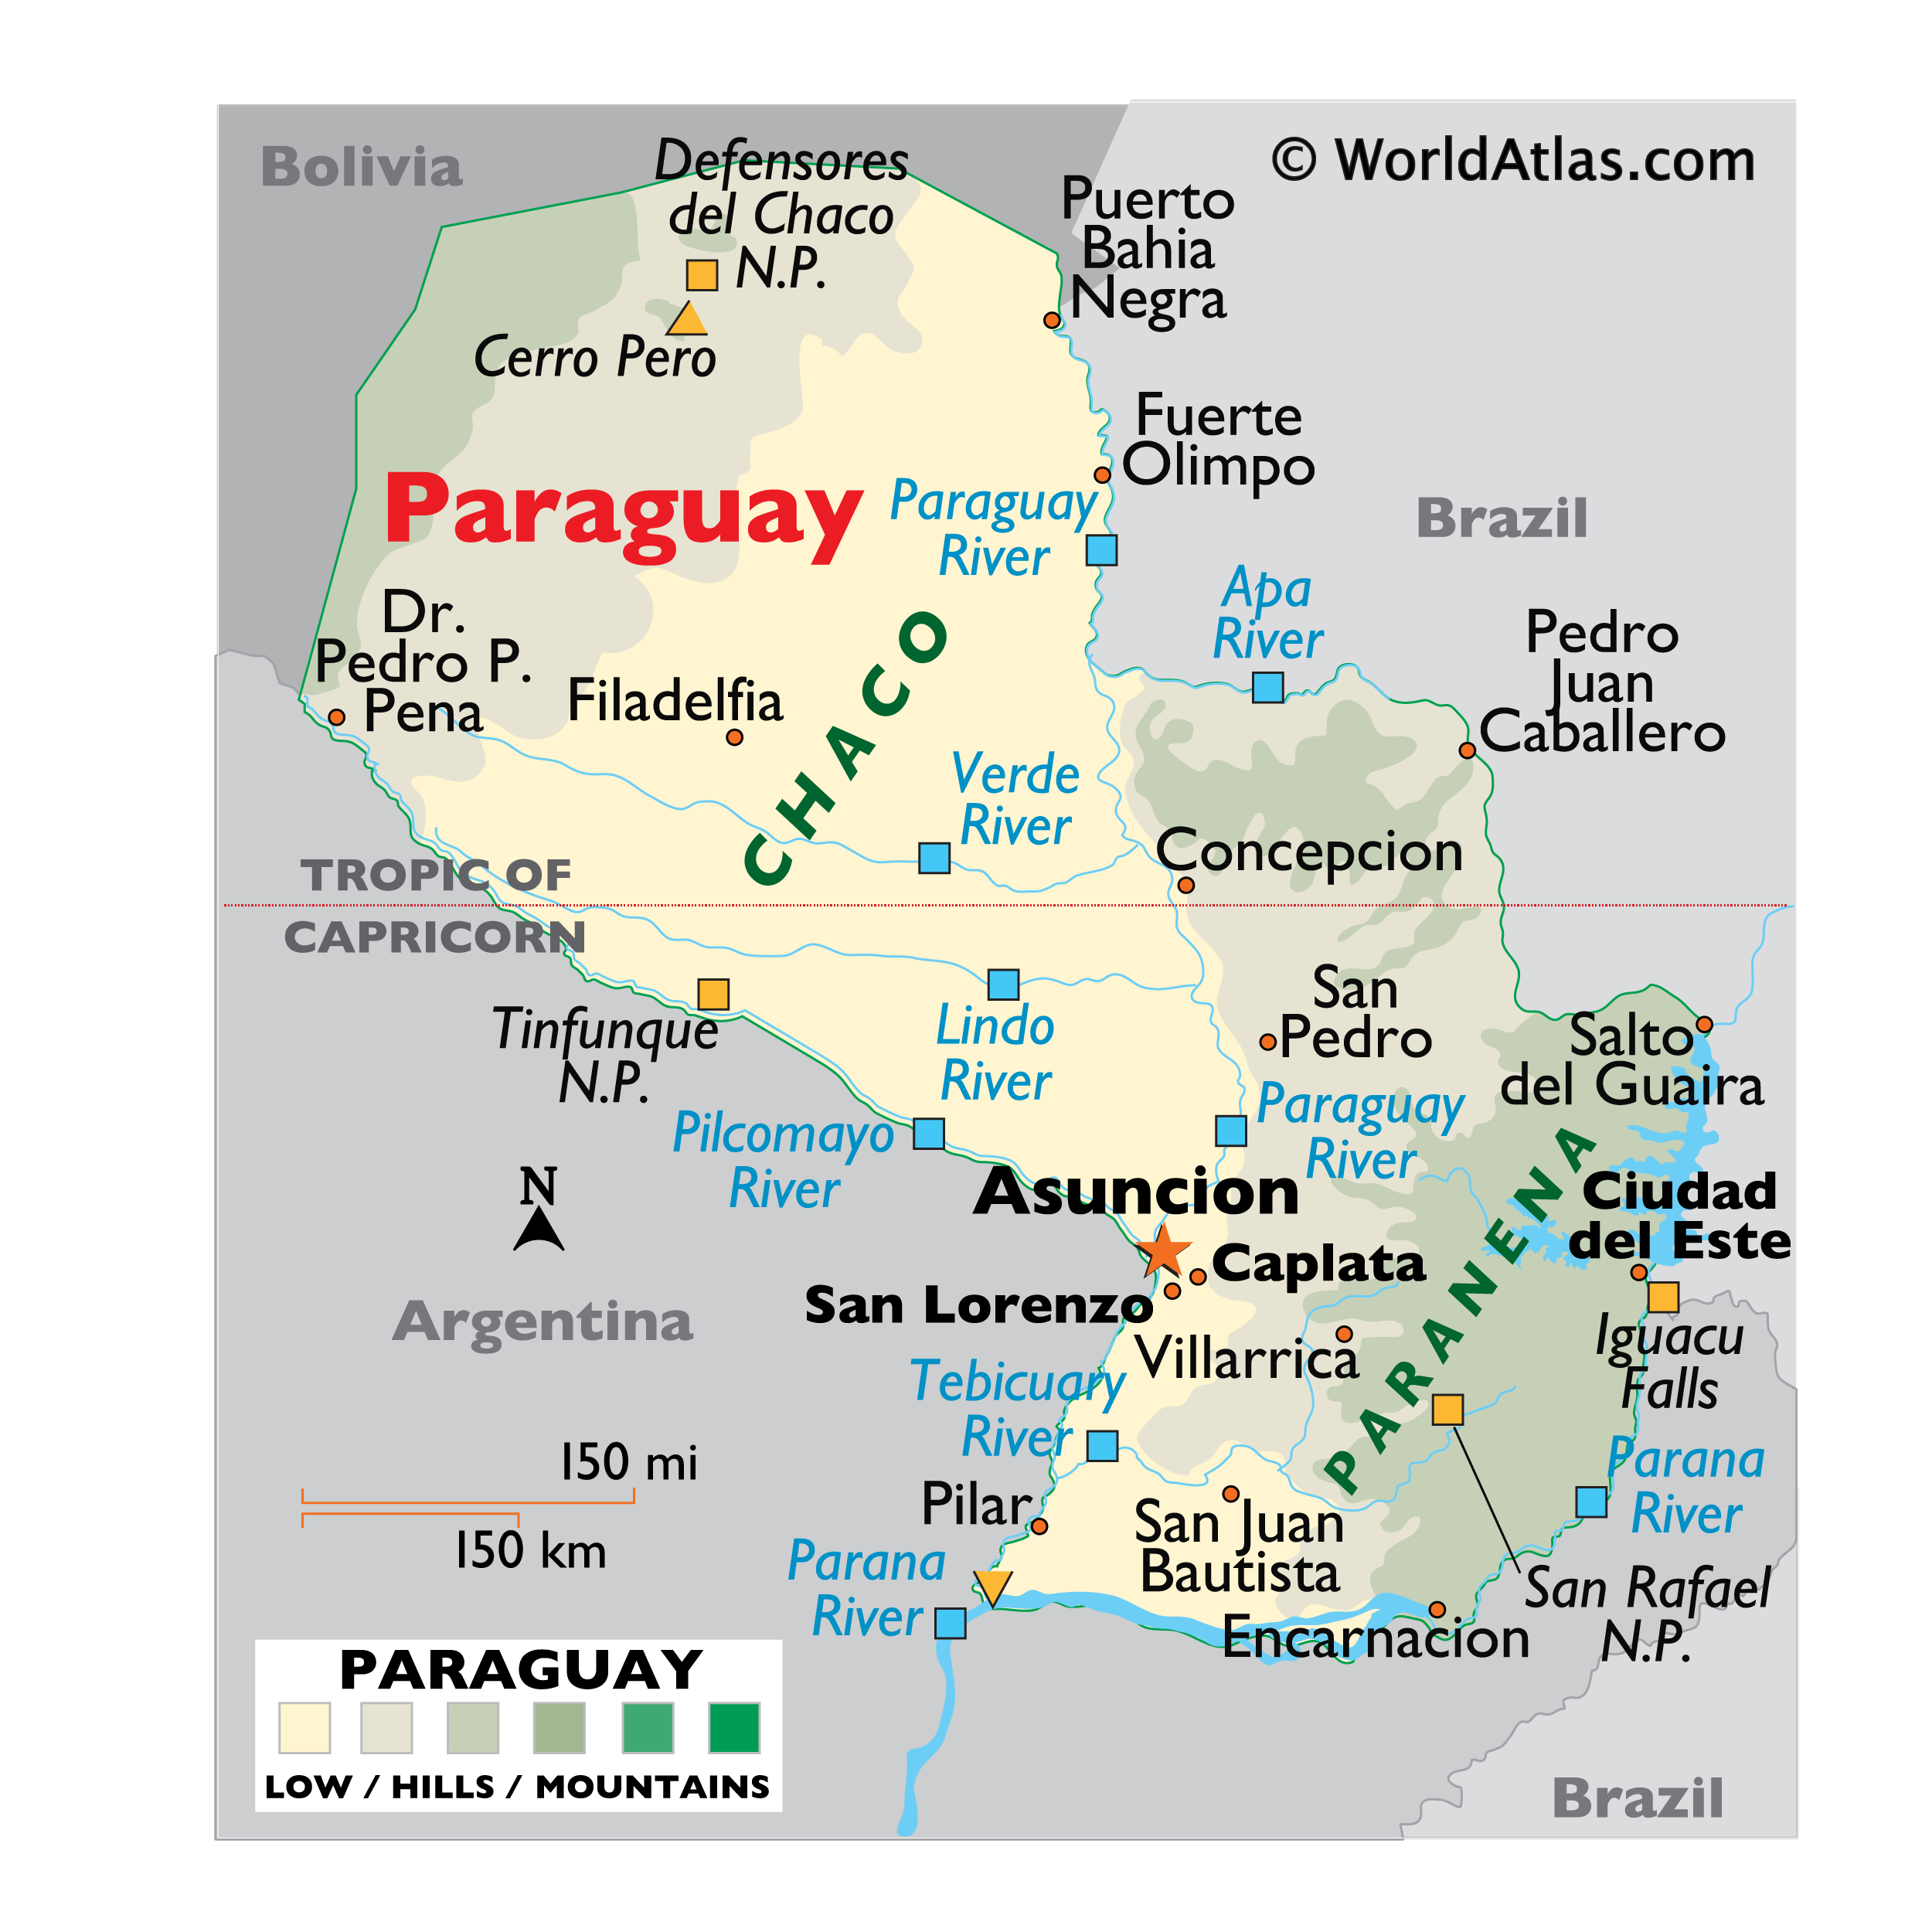 Physical Map of Paraguay showing relief, major rivers, geographical regions, protected areas, important settlements, bordering countries, etc.